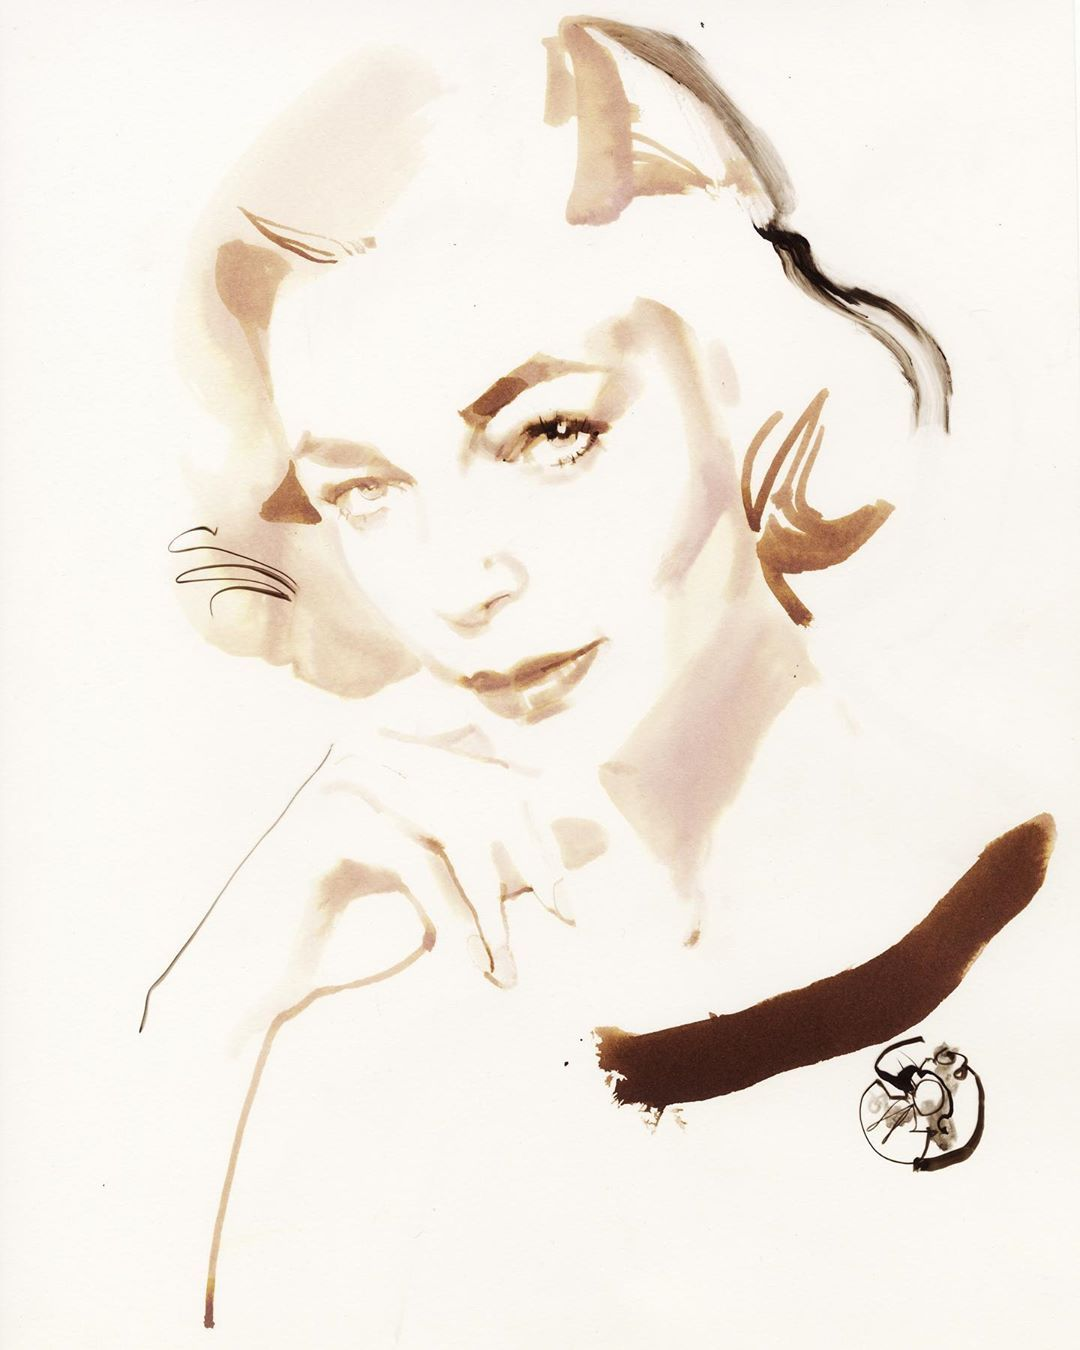 David downton on instagram you know how to whistle dont